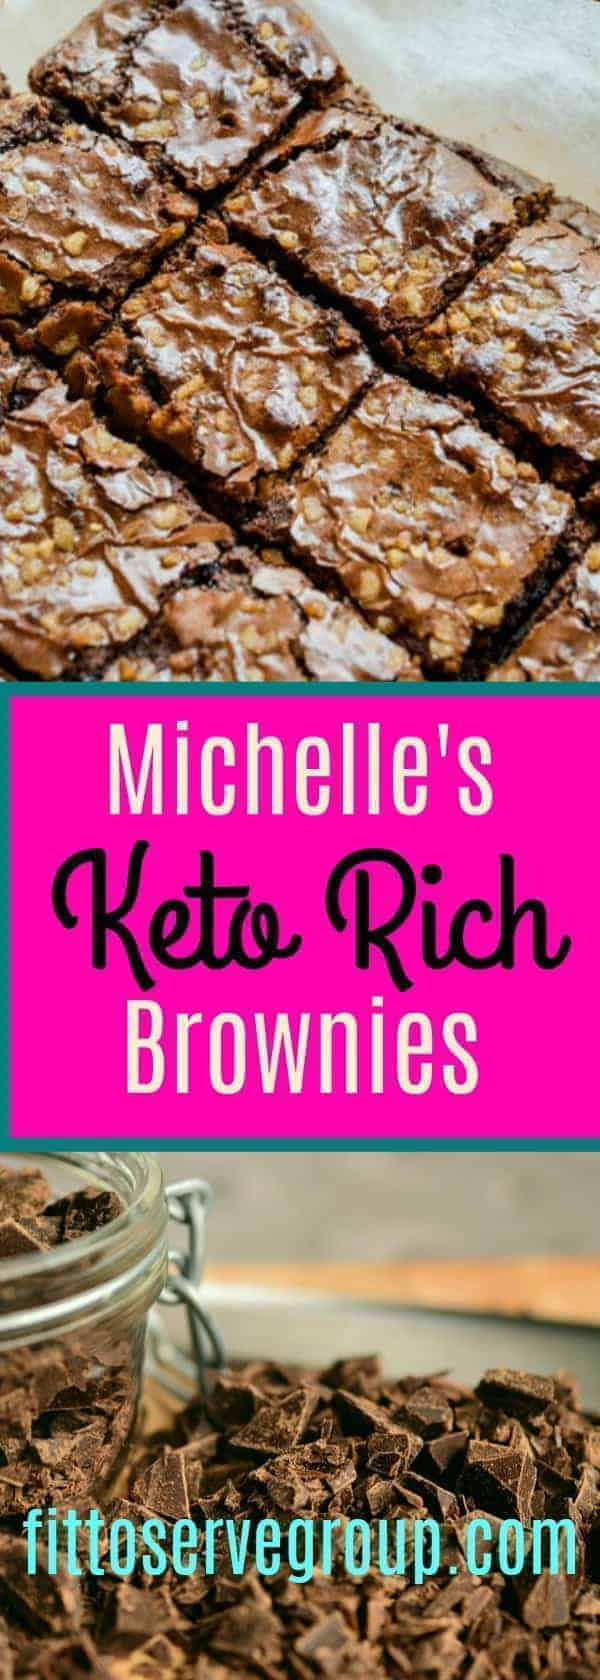 It's a Keto Brownie and it's packed with chocolate flavor. This recipe for Keto Brownies was inspired by my daughter Michelle's favorite traditional brownie. It makes a decadently rich keto-friendly brownie that can rival any high carb brownie #ketobrownie #richketobrownie #lowcarbbrownie #Michelleketobrownies